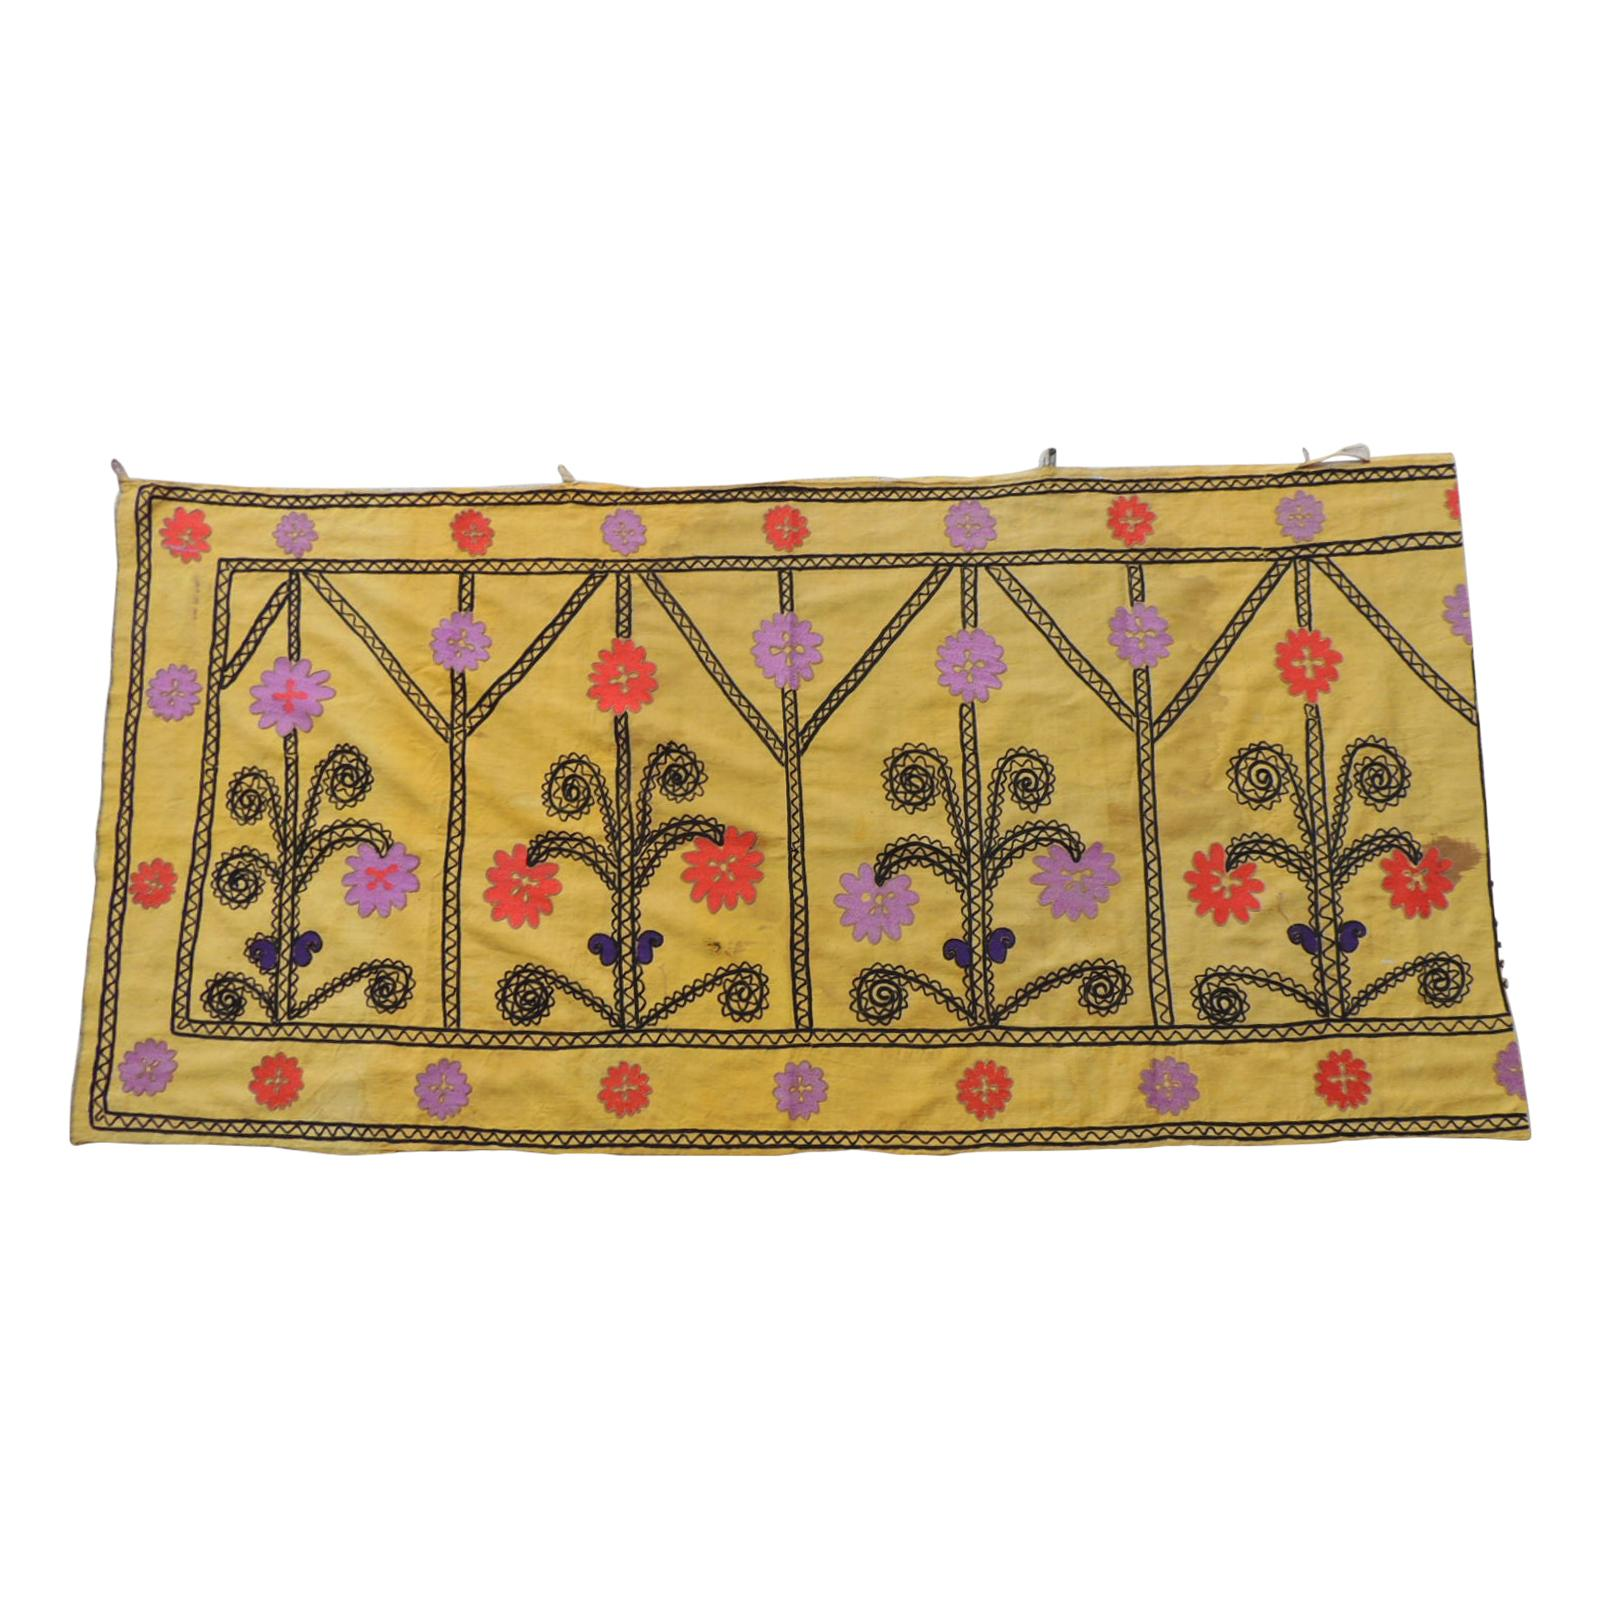 Vintage Yellow and Black Embroidery Suzani Textile Panel